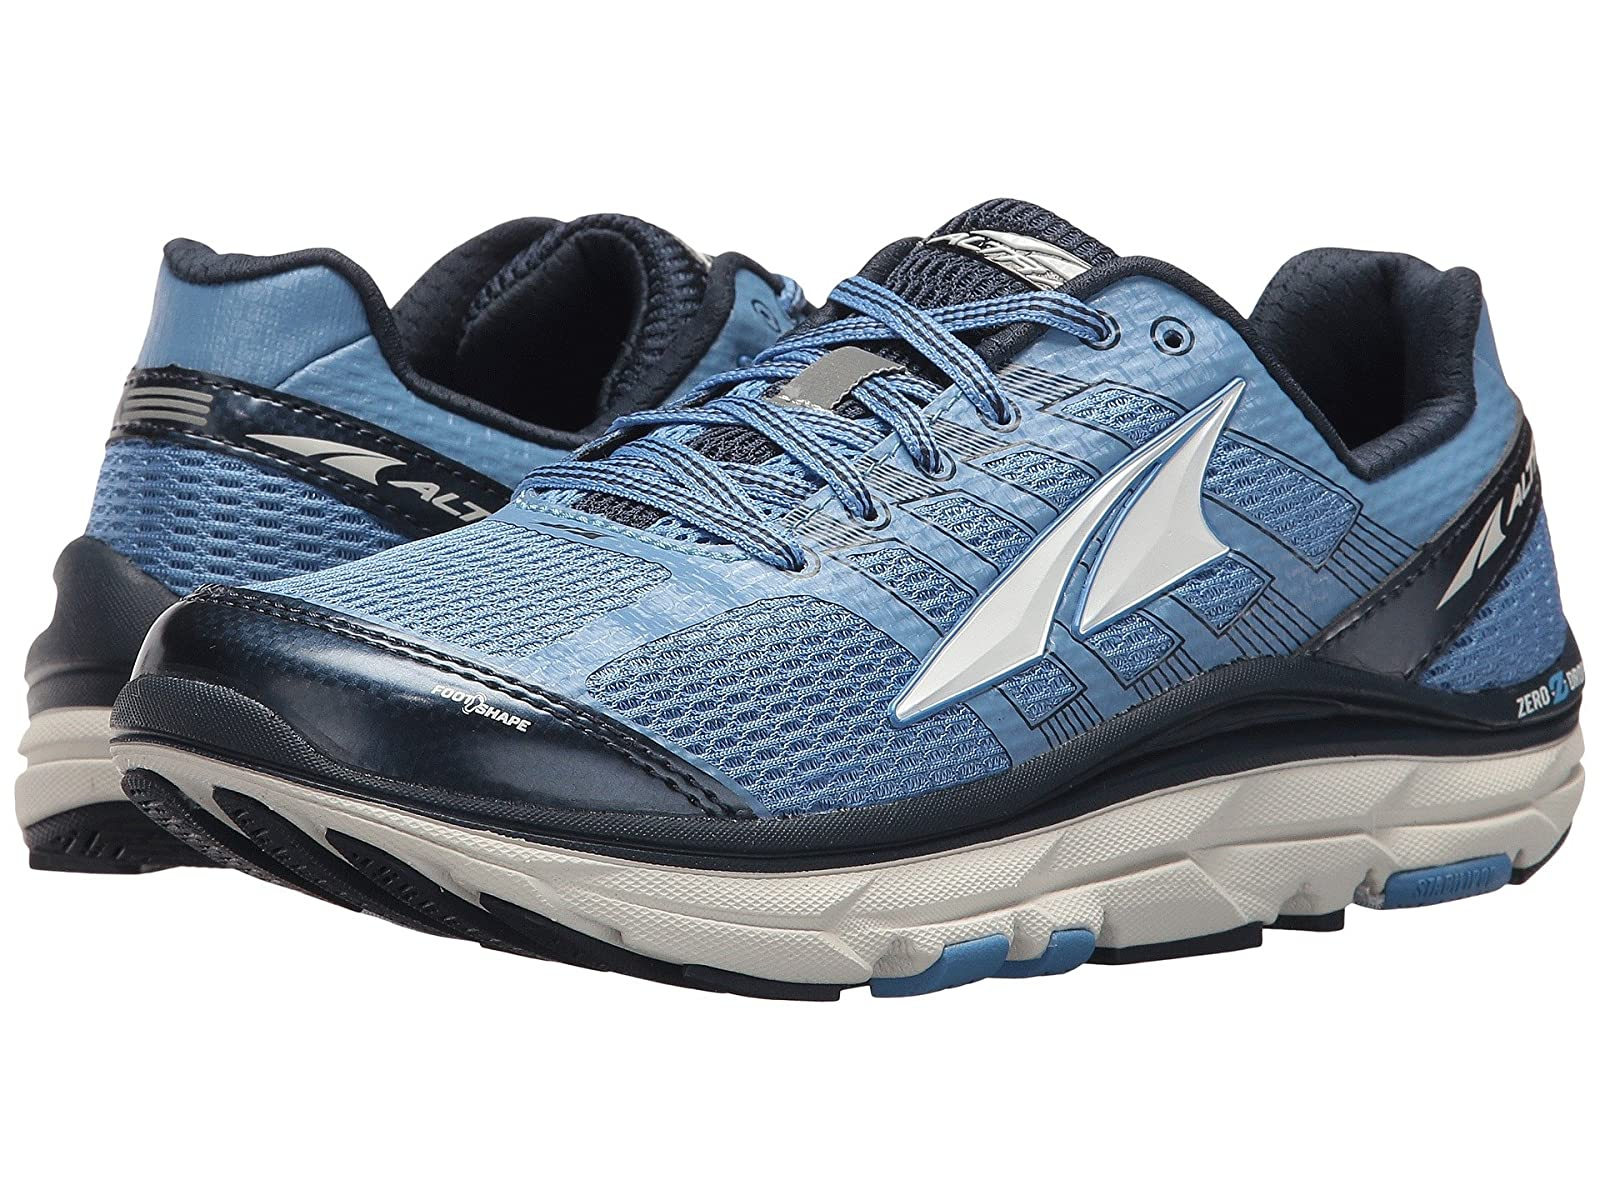 Altra Footwear Provision 3Cheap and distinctive eye-catching shoes